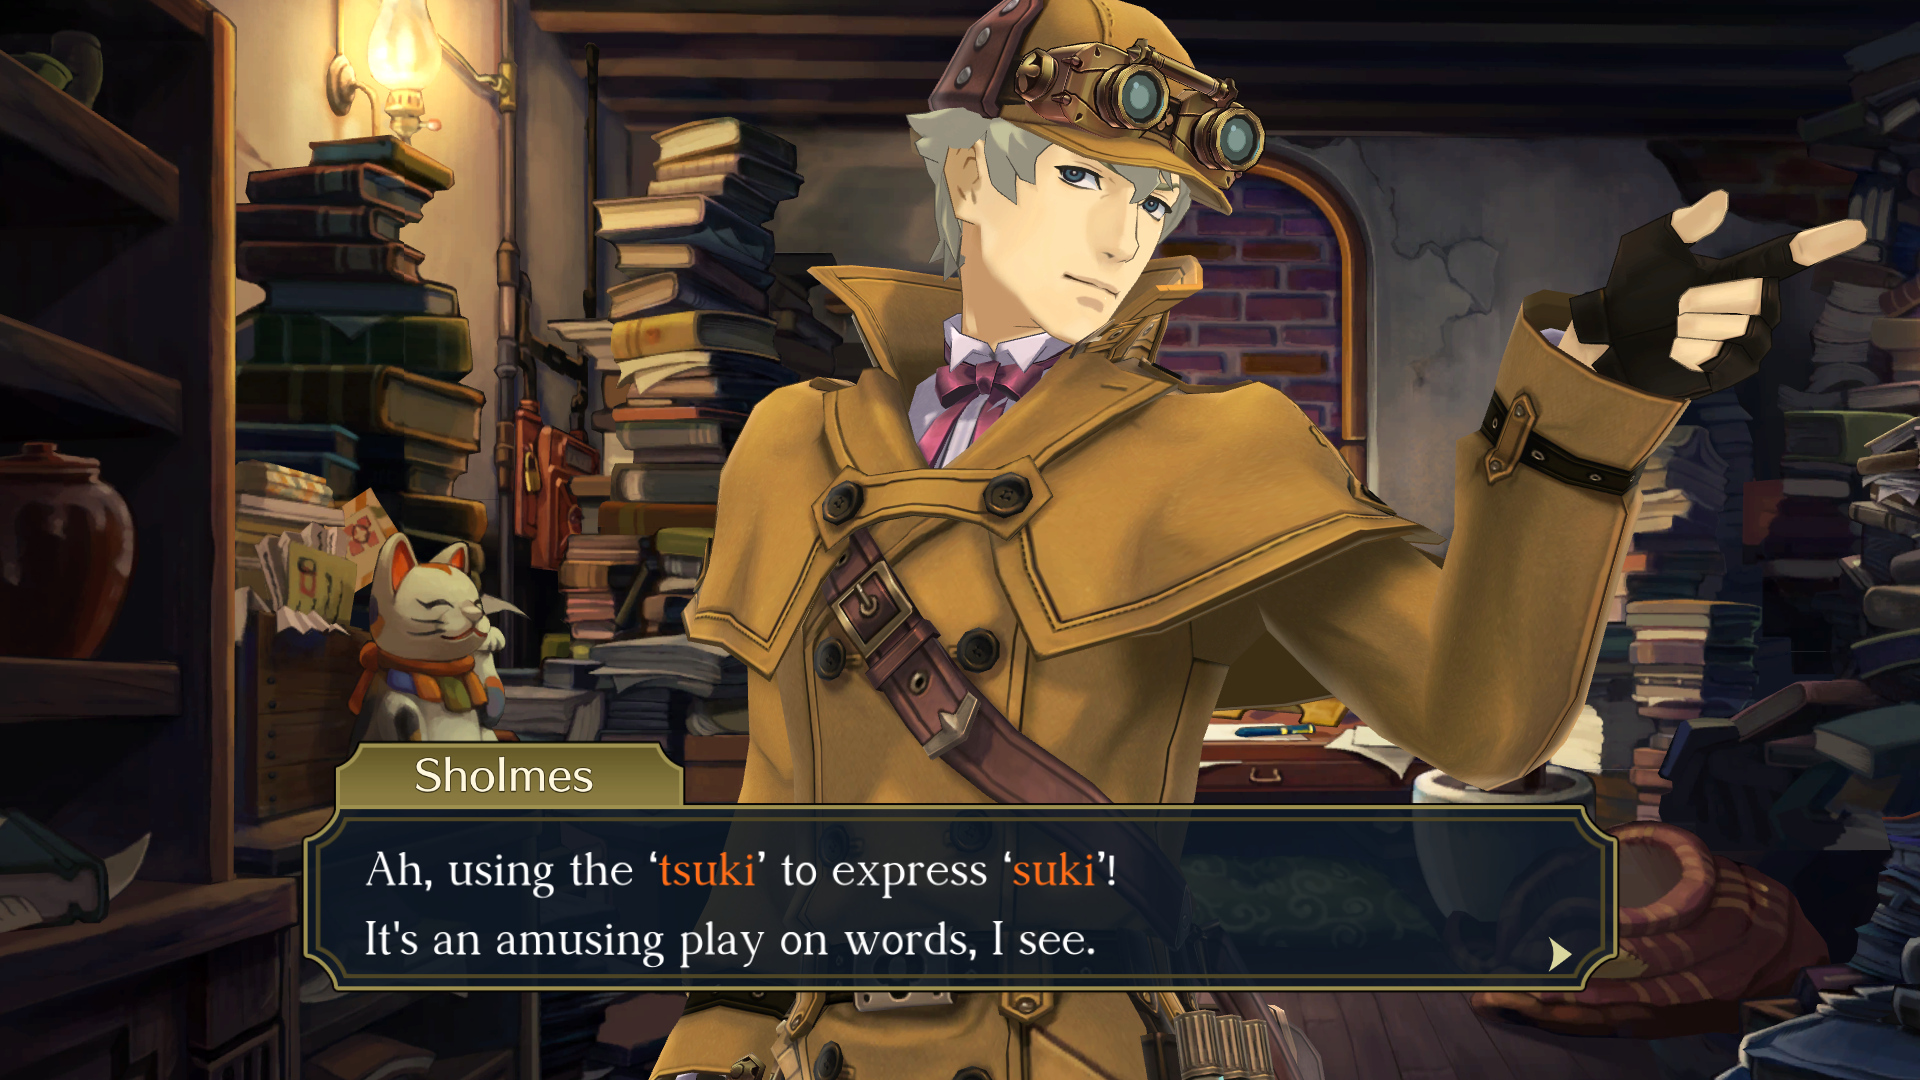 """The Great Ace Attorney Chronicles - Sholmes says: """"Ah, using the  'tsuki' to express 'suki'! It's an amusing play on words, I see."""""""